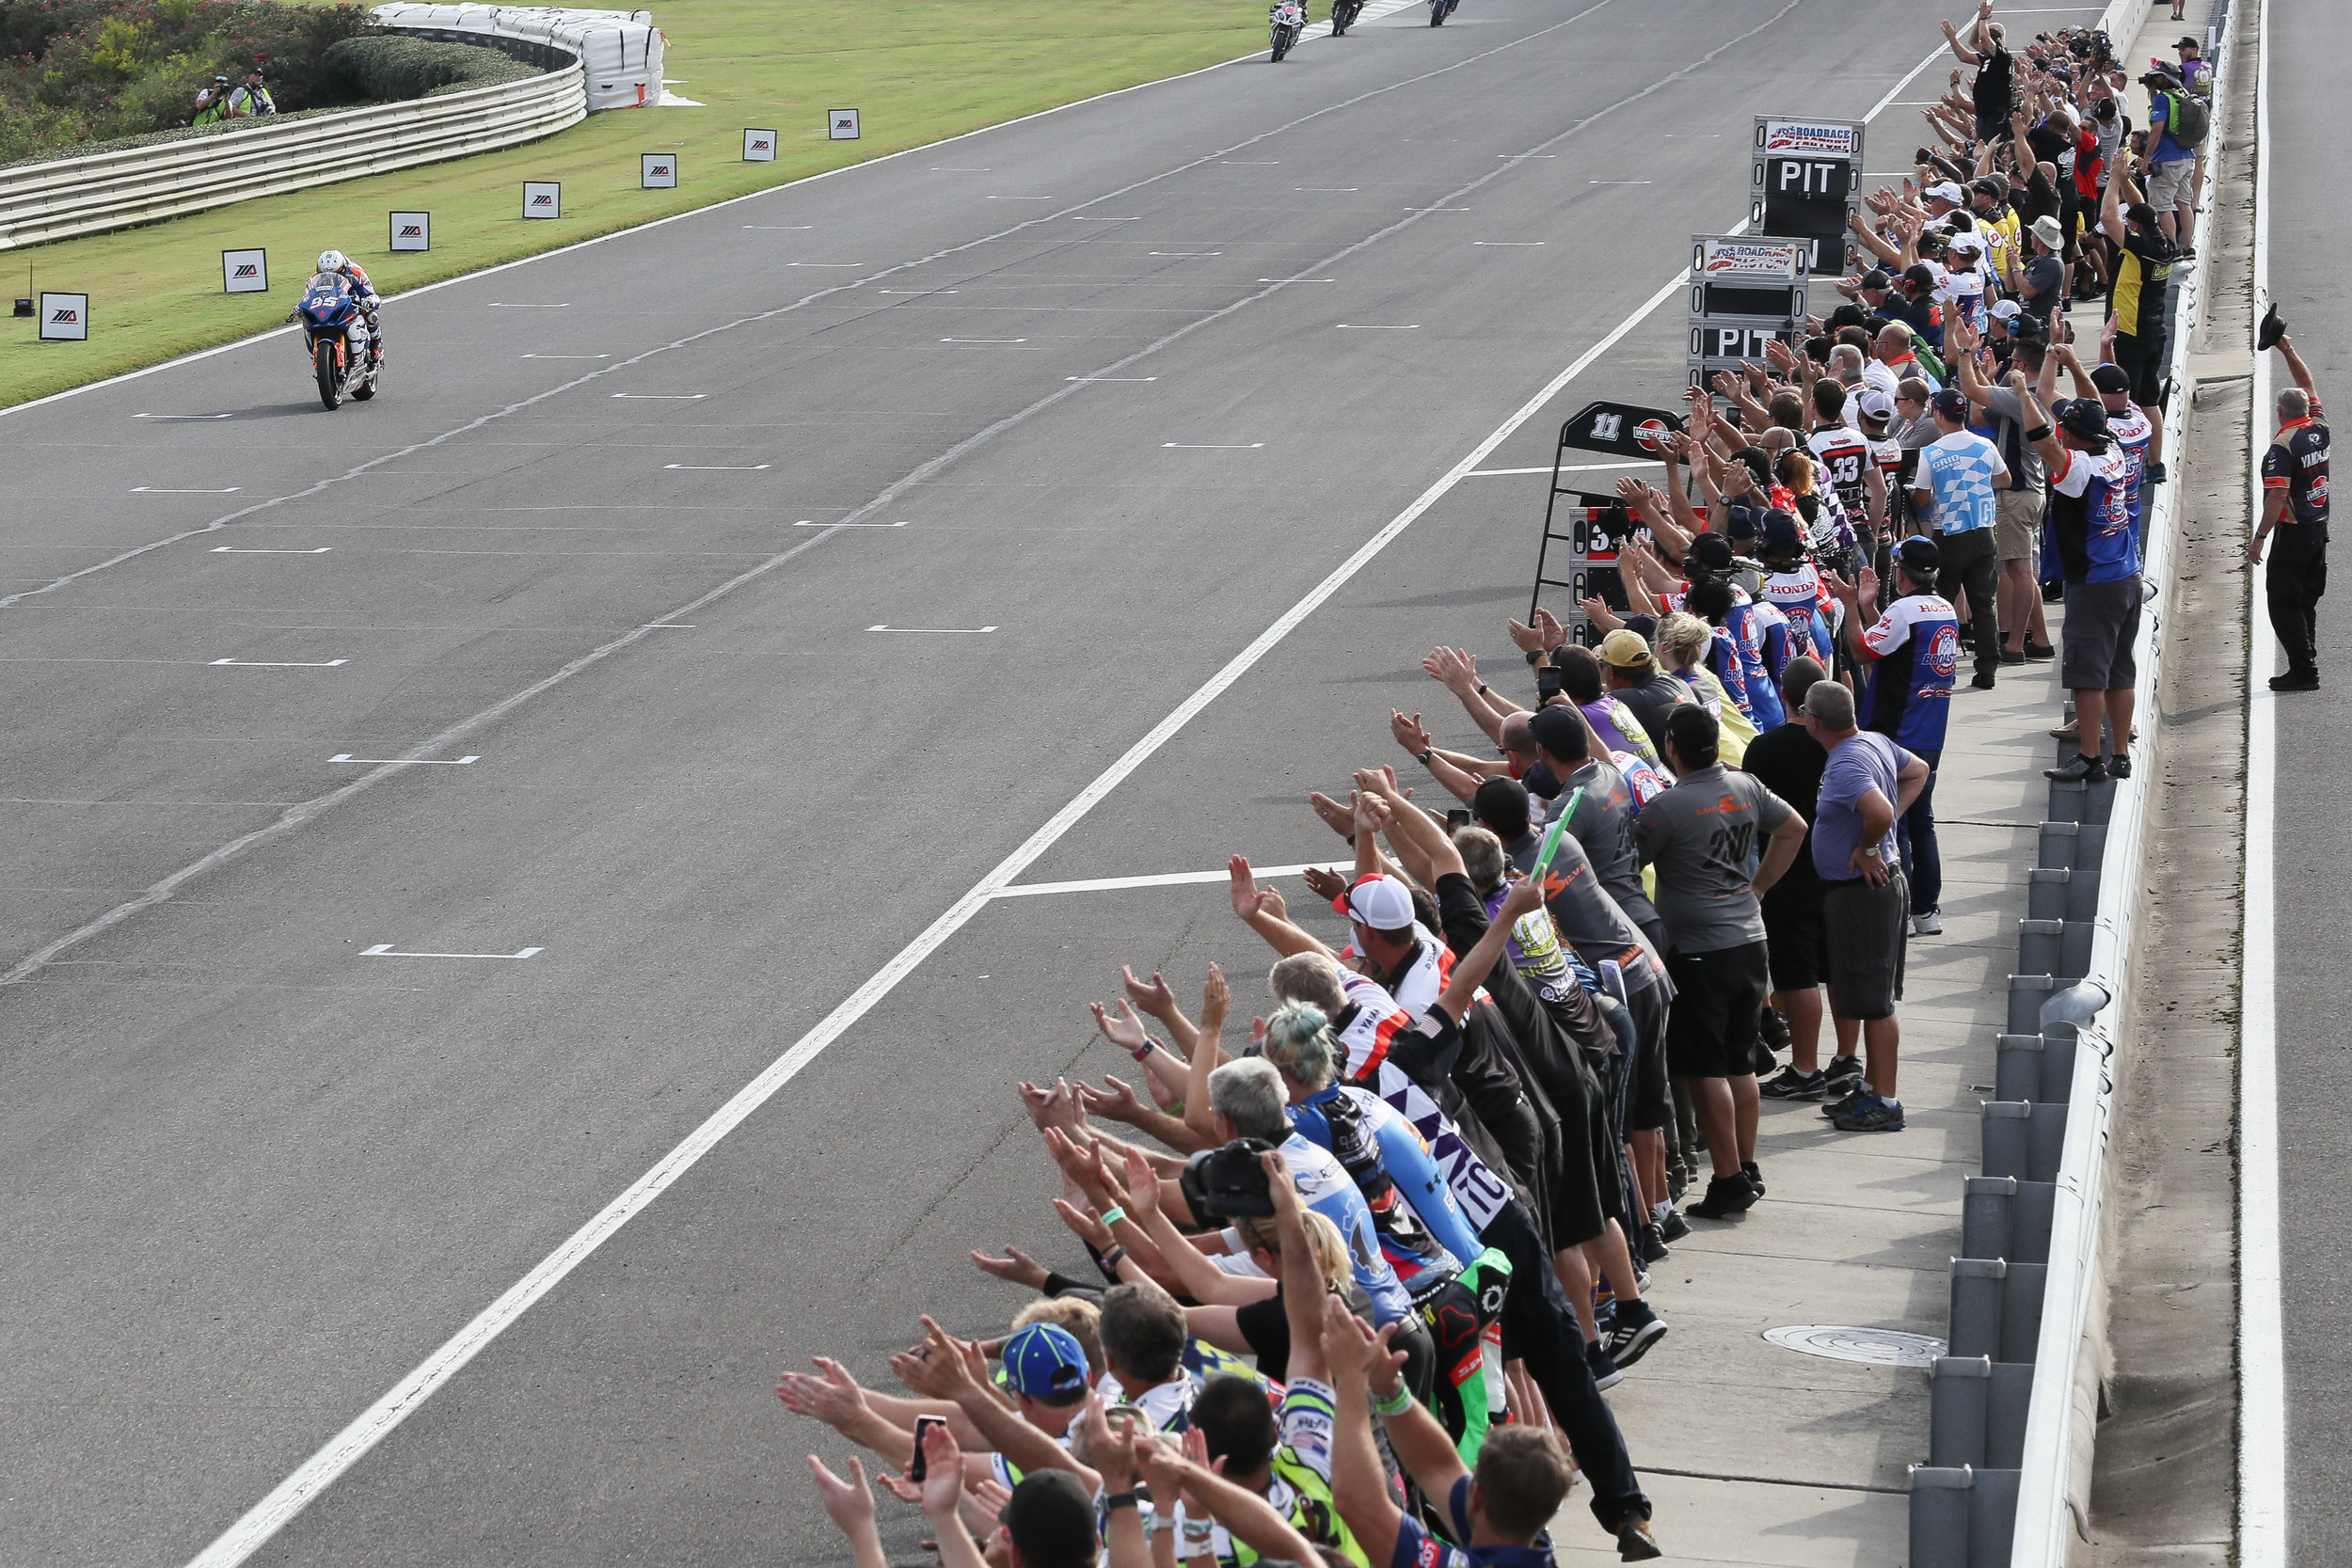 MotoAmerica race team members lined pit wall to cheer Yoshimura Suzuki's Roger Hayden to the finish in his final race. Earlier this summer Hayden announced his retirement from racing after 20 years on the professional circuit. (Brian J. Nelson photo)